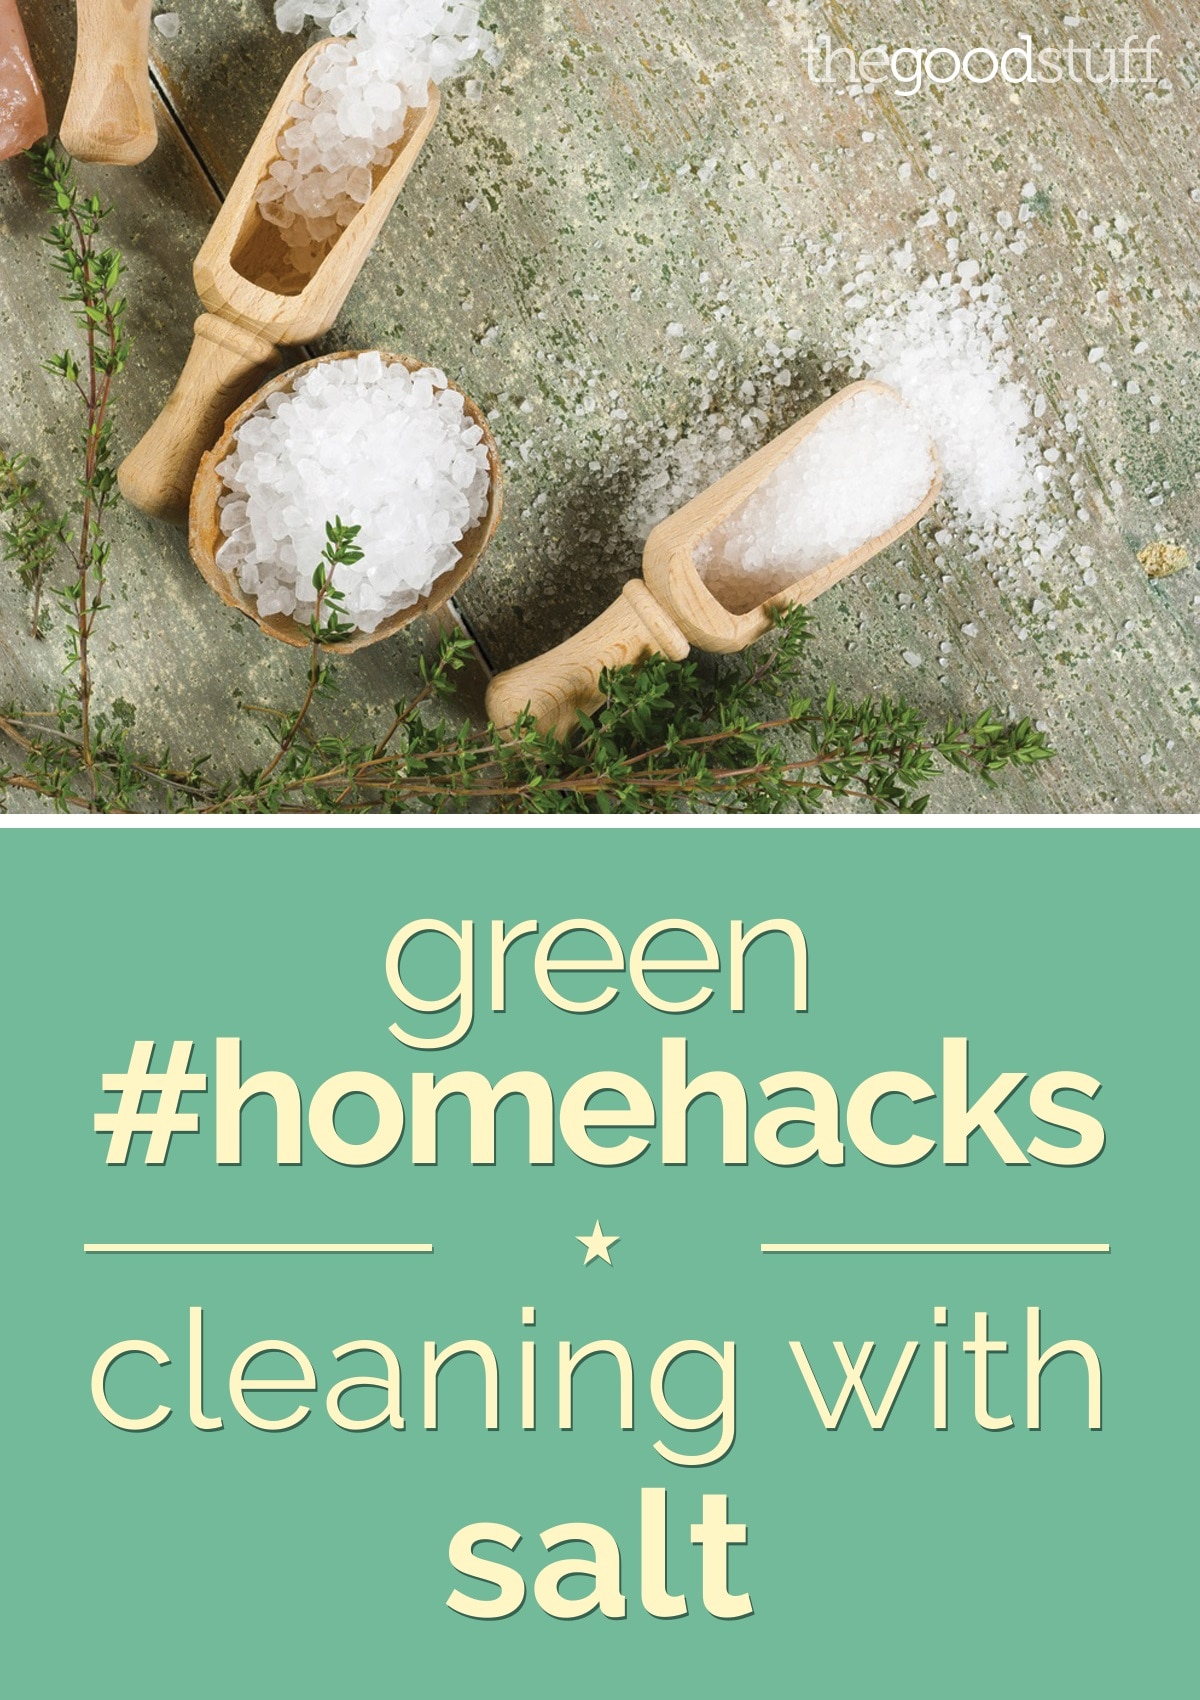 diy-cleaning-with-salt